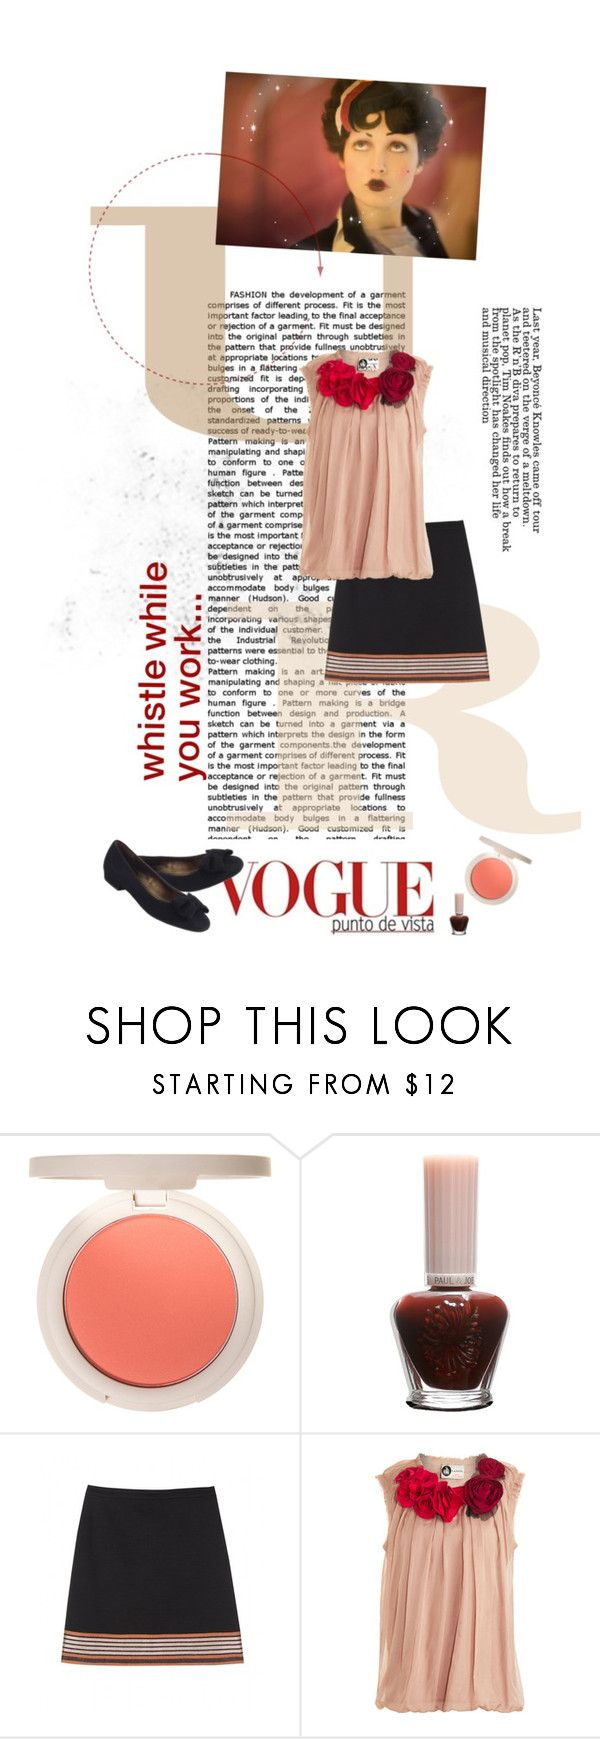 """""""Five O'Clock Whistle"""" by blanche-neige ❤ liked on Polyvore featuring Paul & Joe, Missoni, Lanvin, Peter Kaiser, barney's, floral applique, missoni for target, peter kaiser pumps, missoni skirts and missoni"""